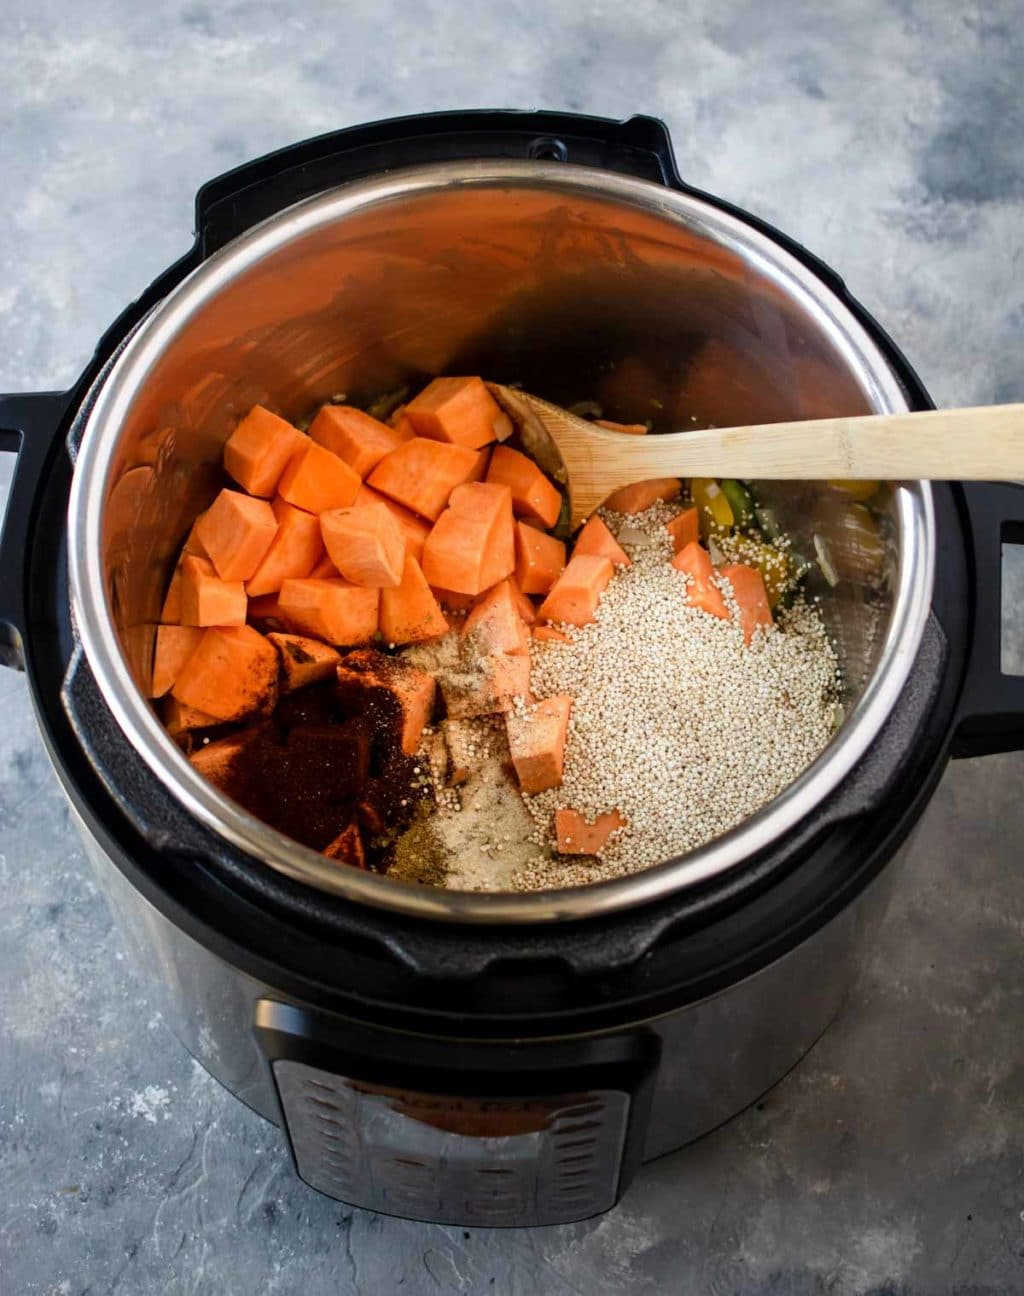 Sweet Potatoes, Quinoa, and spices in the Instant Pot